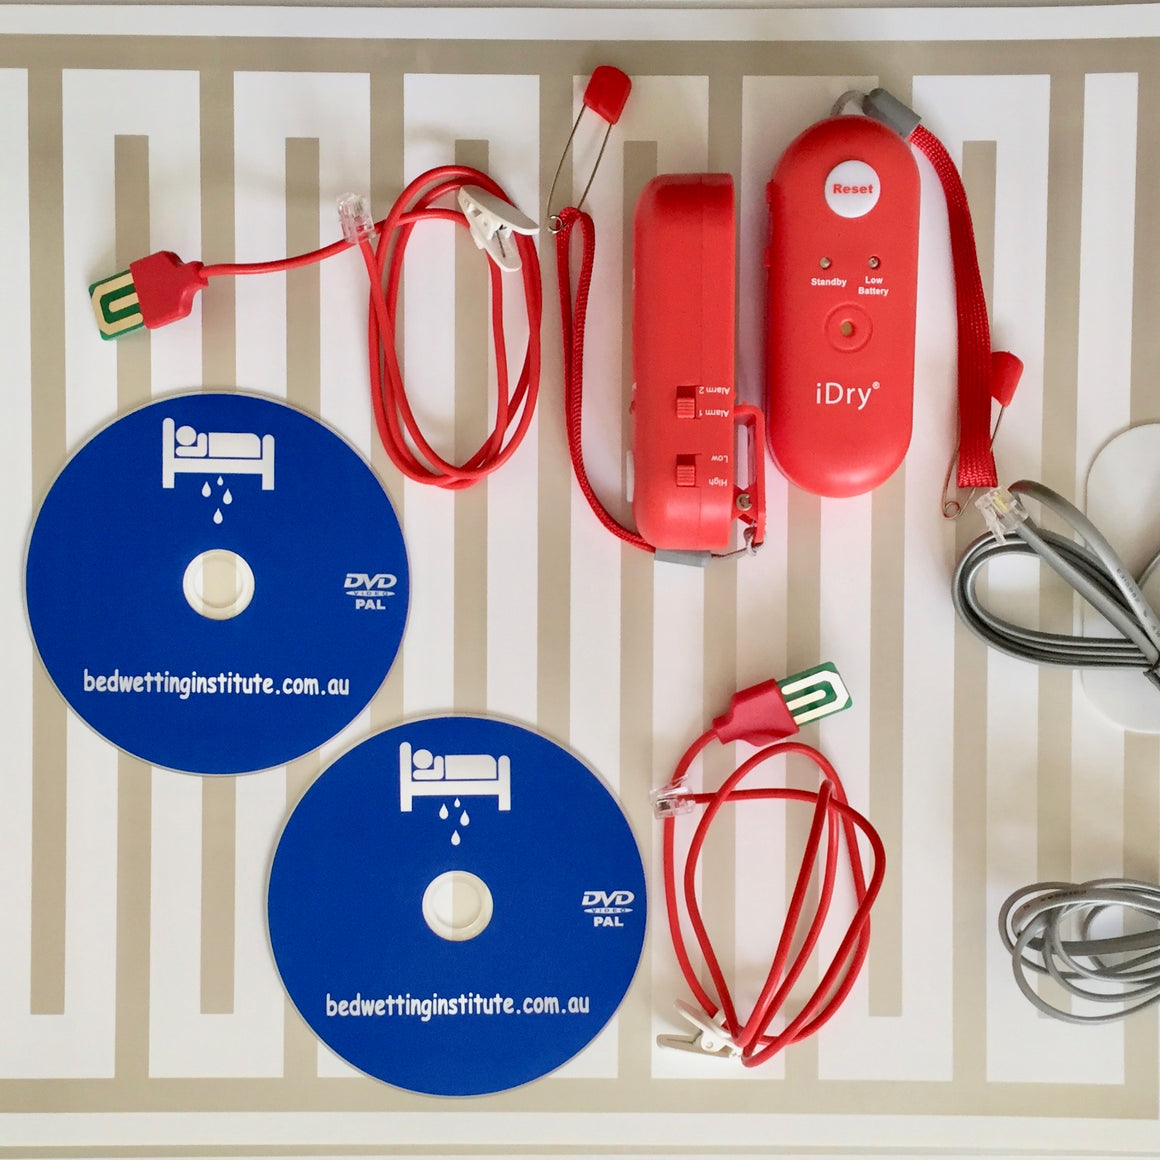 Twin pack -2 x iDry Bedwetting Alarm +2 x underpants sensor + 2 x alarm mat for Pad and Bell